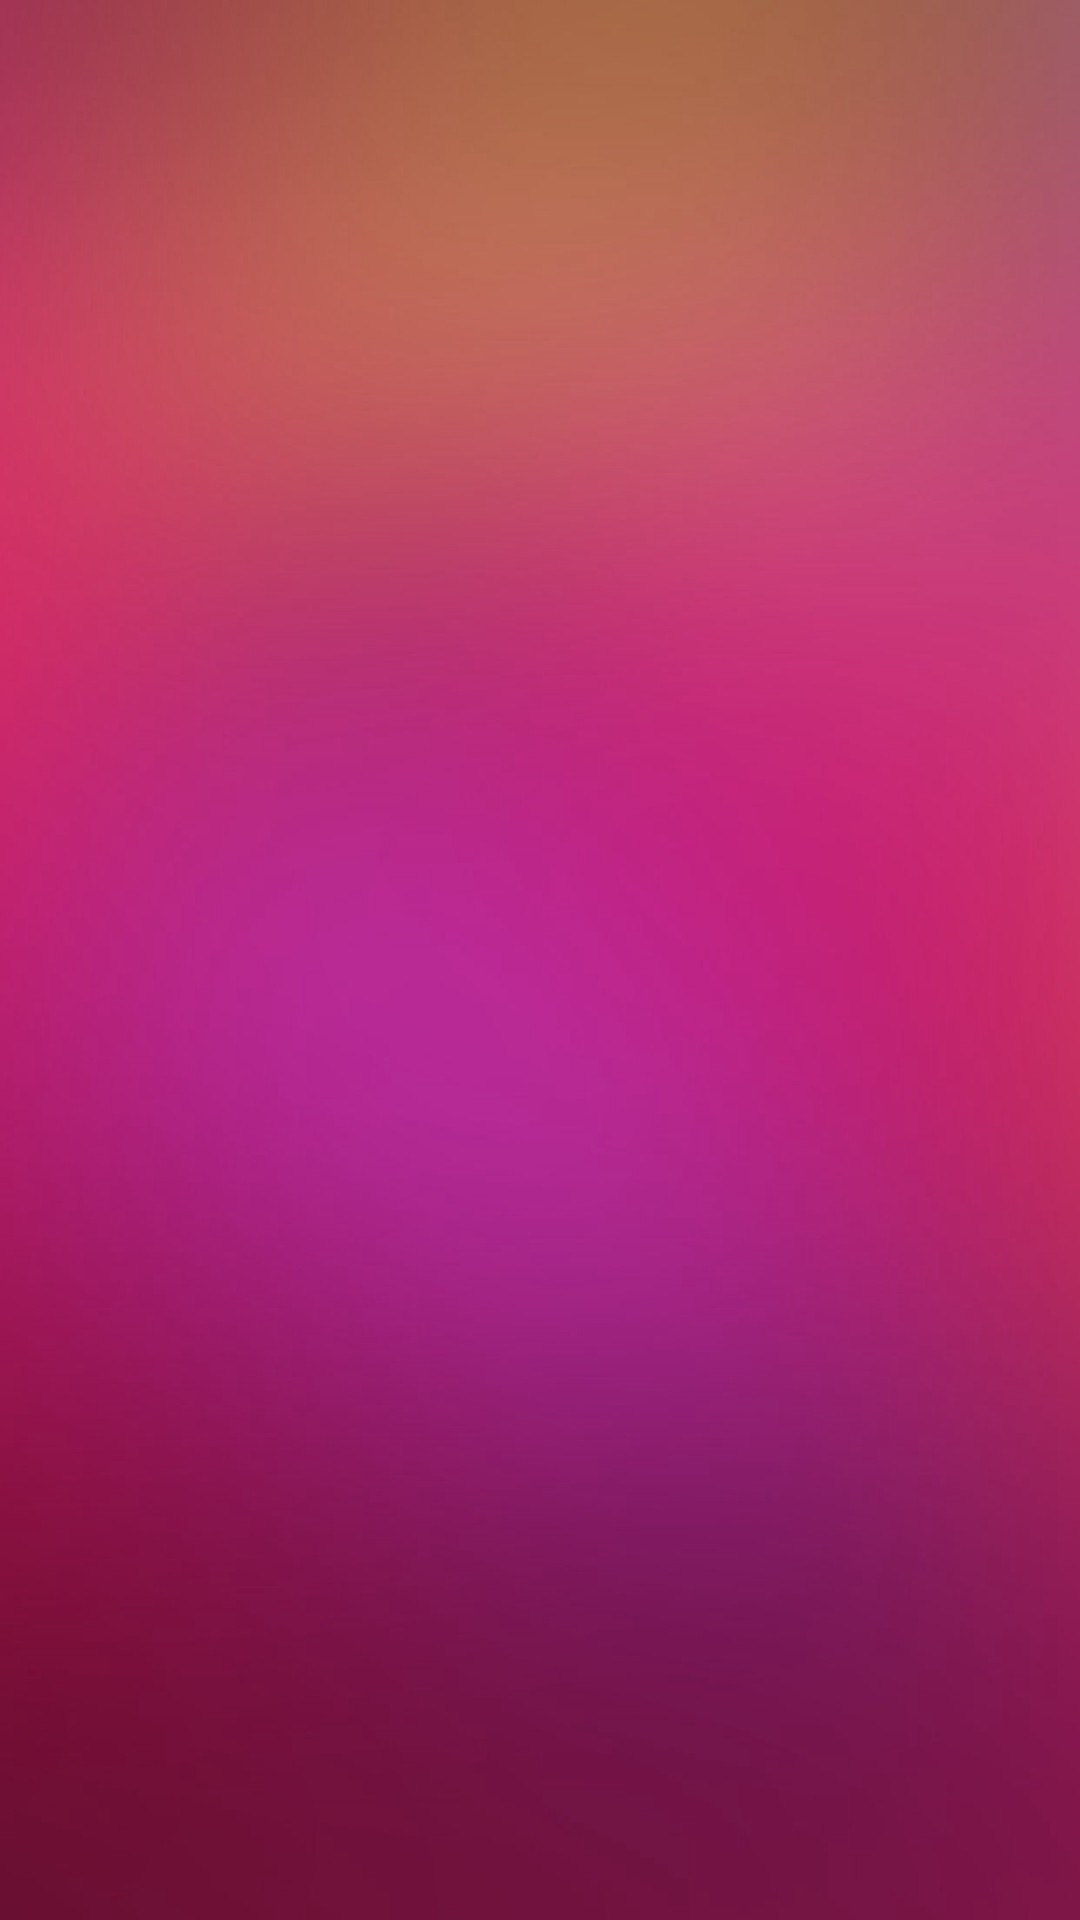 1080x1920 Hot Pink Red Gradation Blur iPhone 6 wallpaper